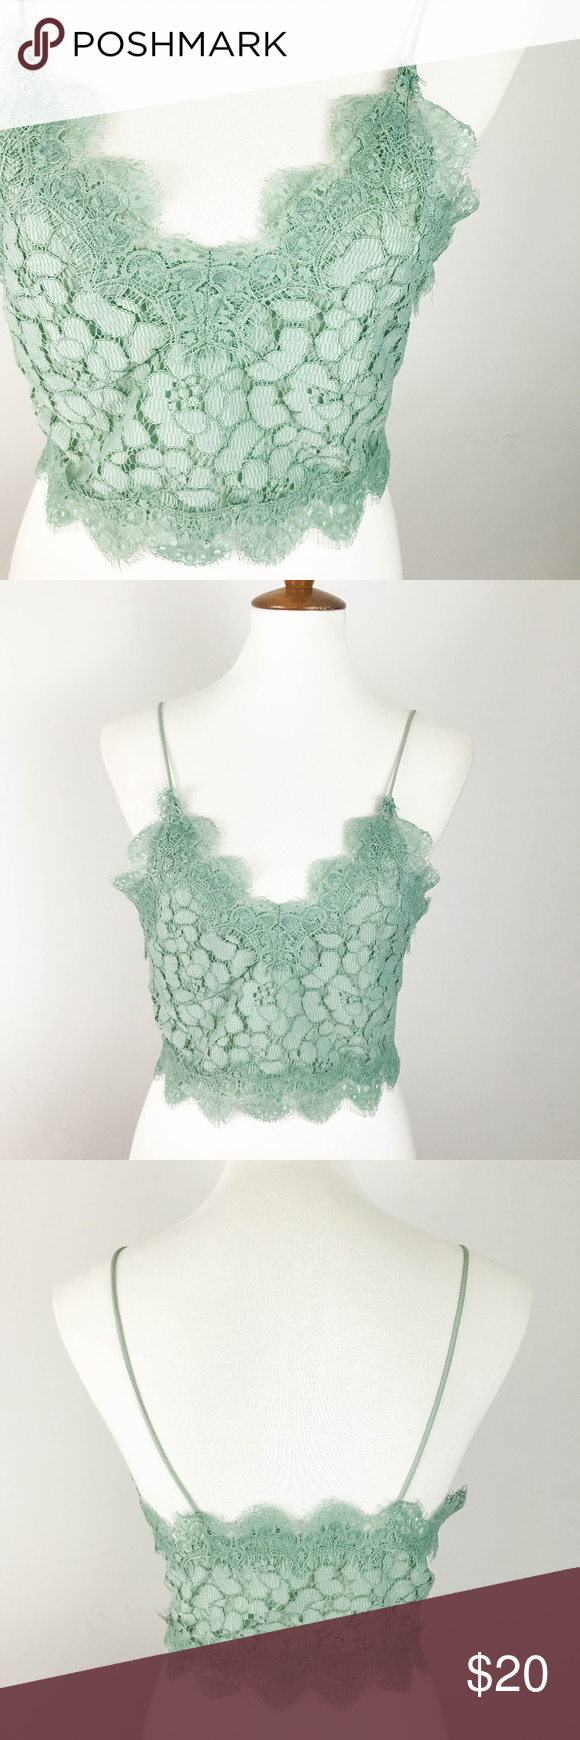 H&m green lace dress  HuM Bralette Crop Top Size  Green Lace Fitted